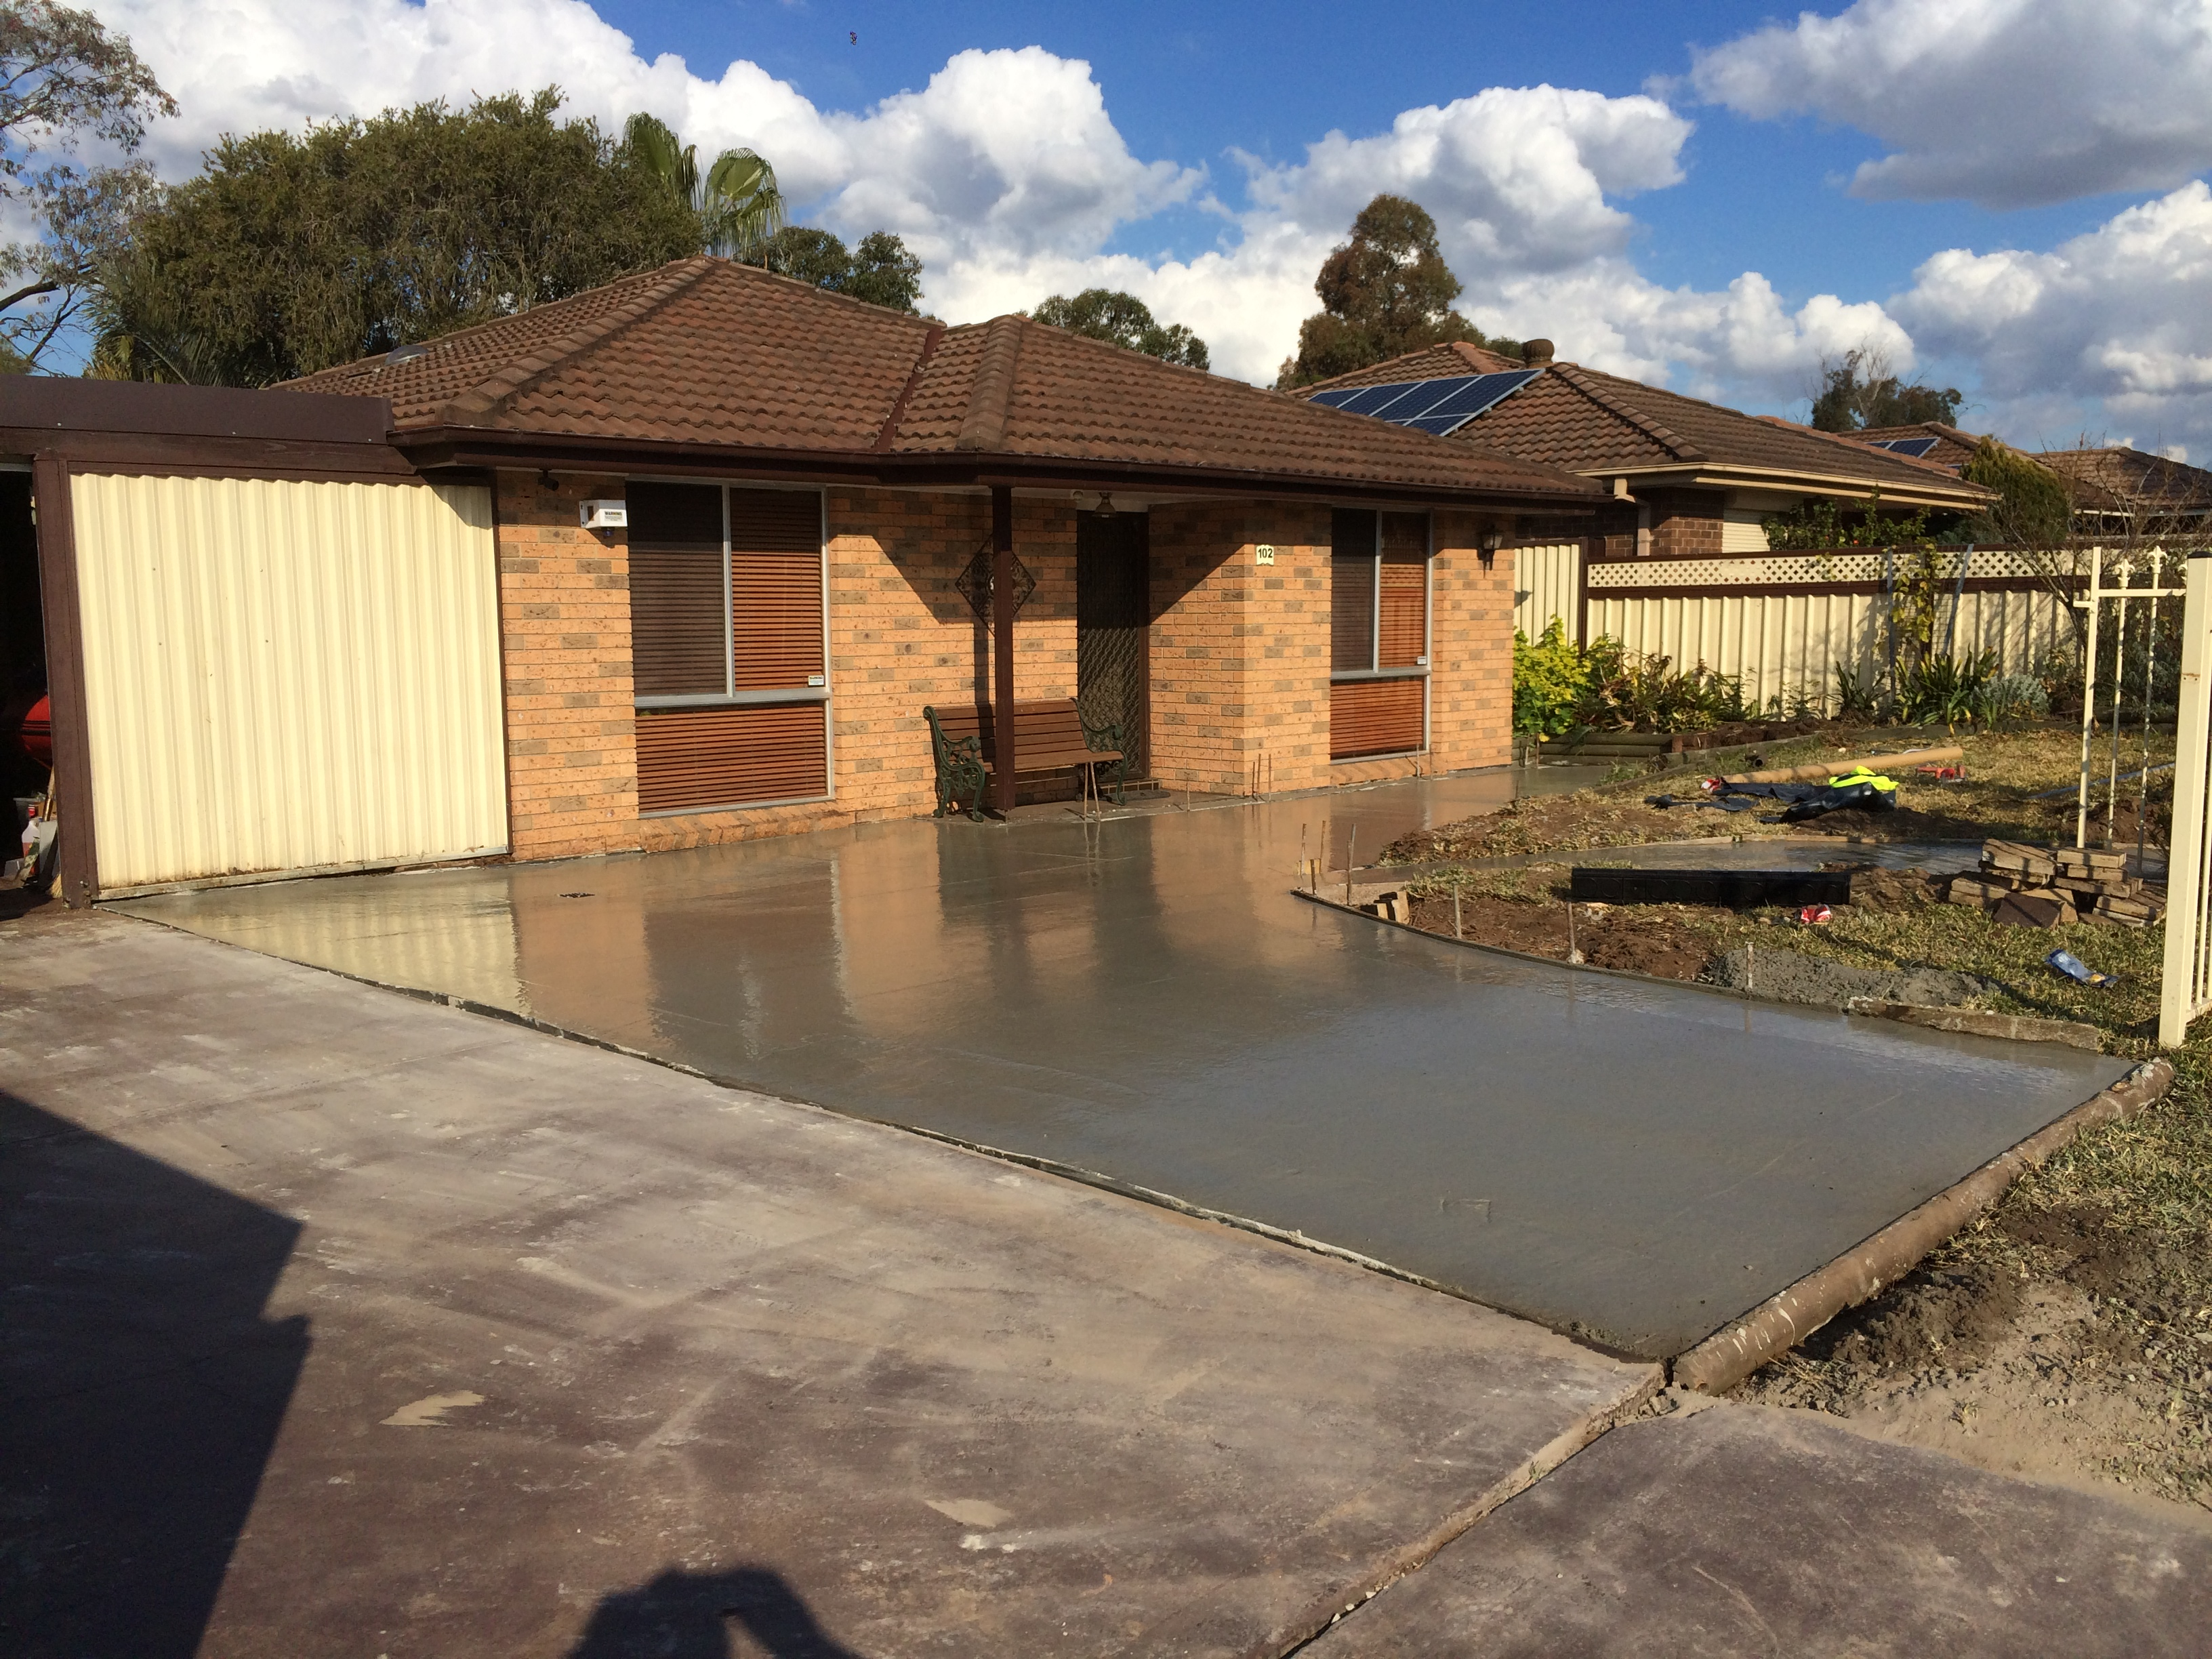 Extension to driveway - Shalvey